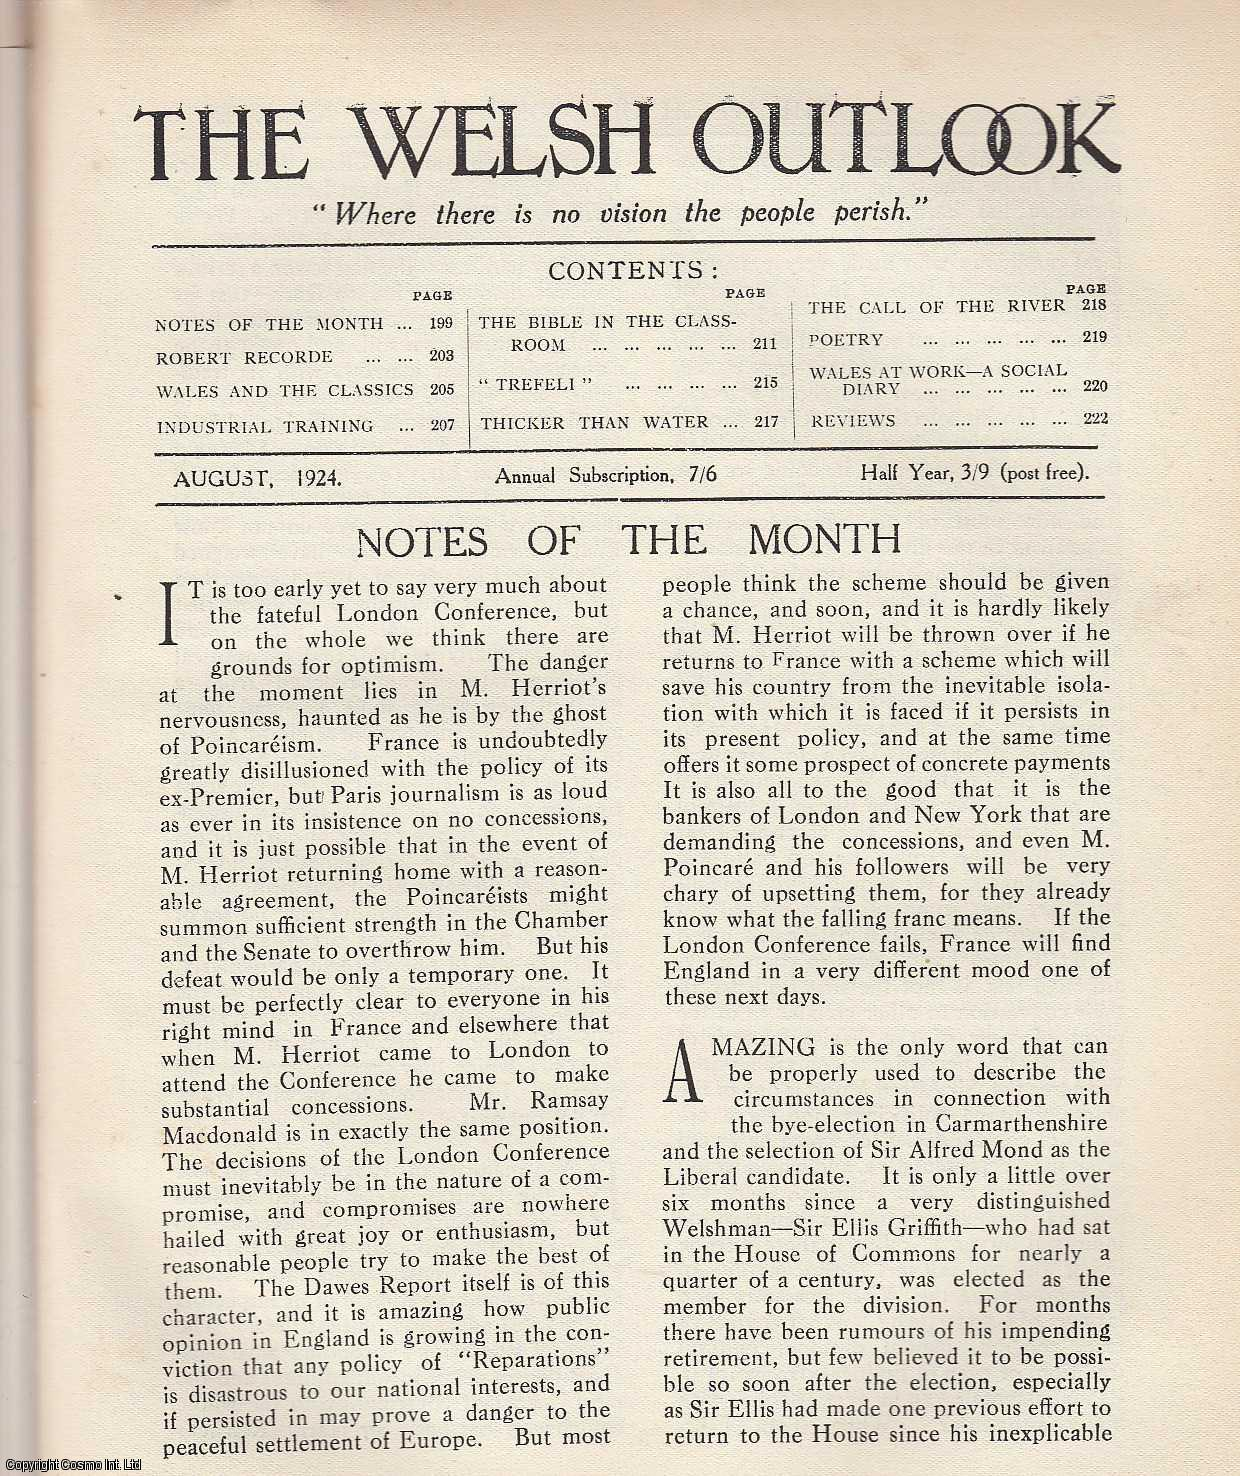 The Welsh Outlook. A Monthly Journal of National Social Progress. August, 1924. Contains; Robert Recorde by Evelyn Lewes; Wales and The Classics; Industrial Training by William King; The Bible in The Classroom by Arthur G. Lucas; Trefeli by E. Roland Williams; Thicker Than Water by Morgan Watcyn-Williams; The Call of The River by Ellen A.C. Lloyd-Williams; Wales at Work - A Diary of Things Said and Done., Thomas Jones (Editor)